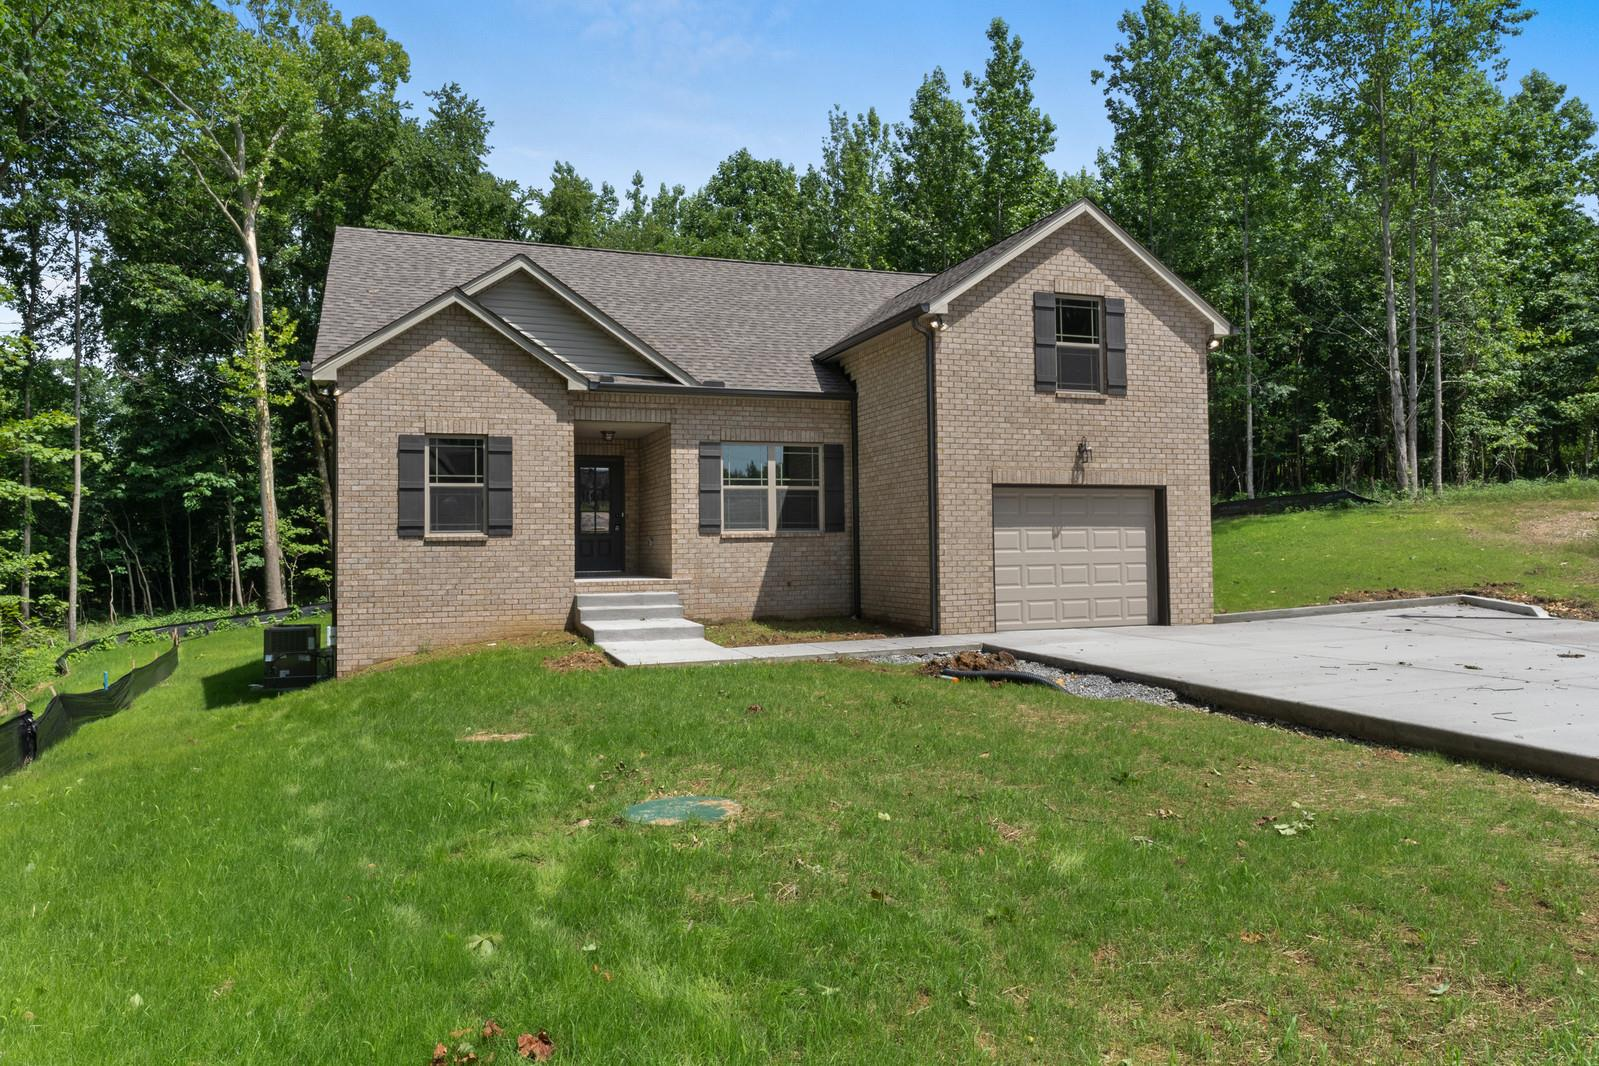 1213 Southern Rail Dr, Goodlettsville, TN 37072 - Goodlettsville, TN real estate listing